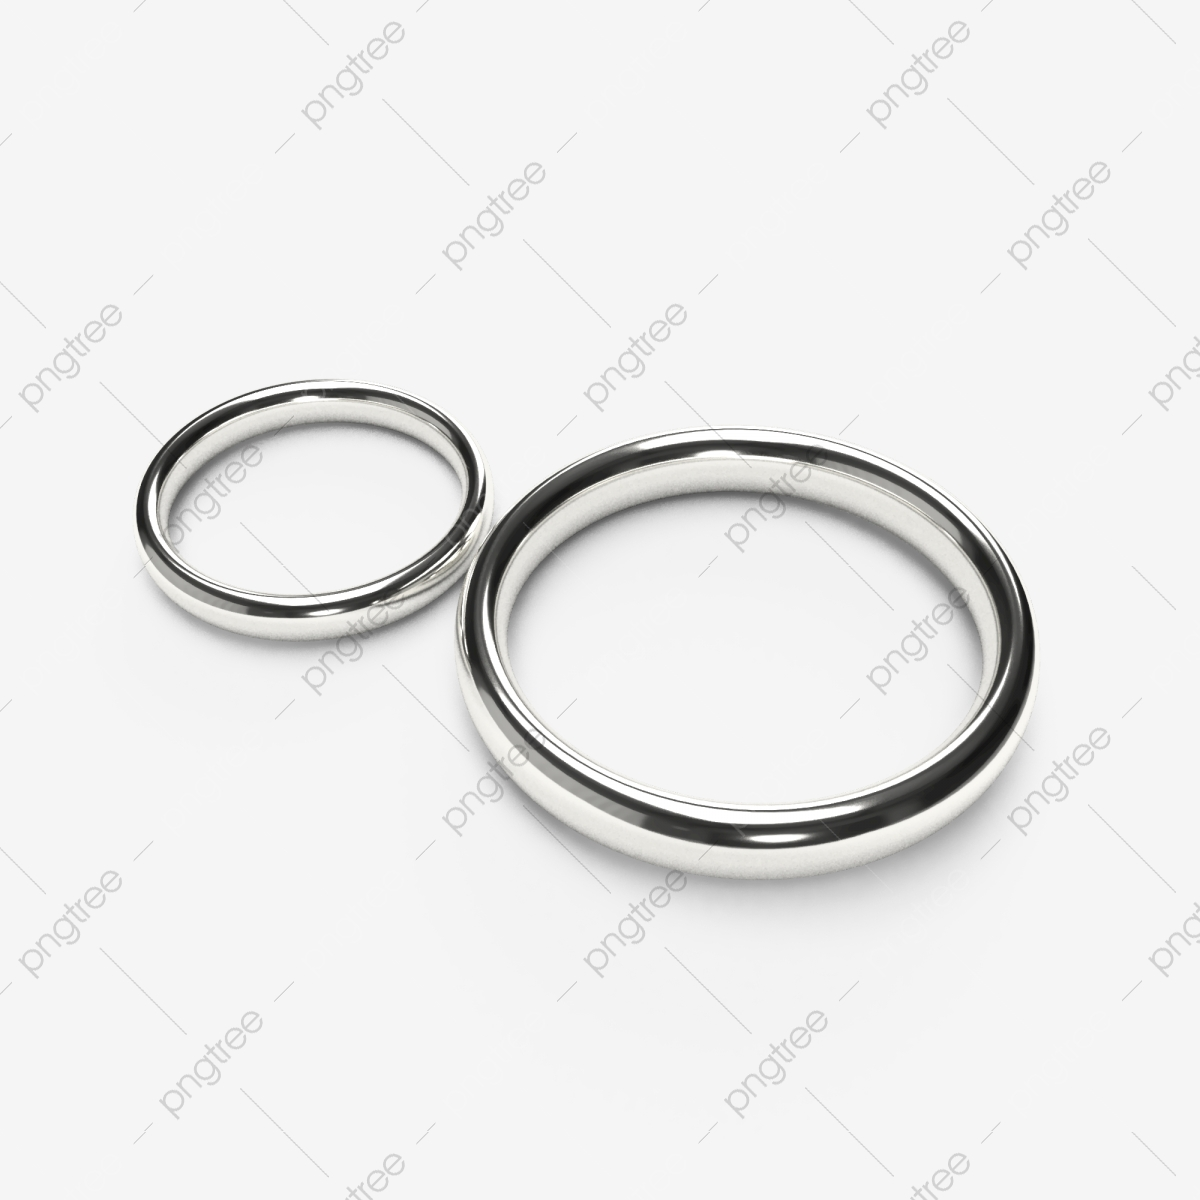 Luxury Silver Wedding Rings Isolated On Transparent Background Married Platinum Rings Png Transparent Clipart Image And Psd File For Free Download